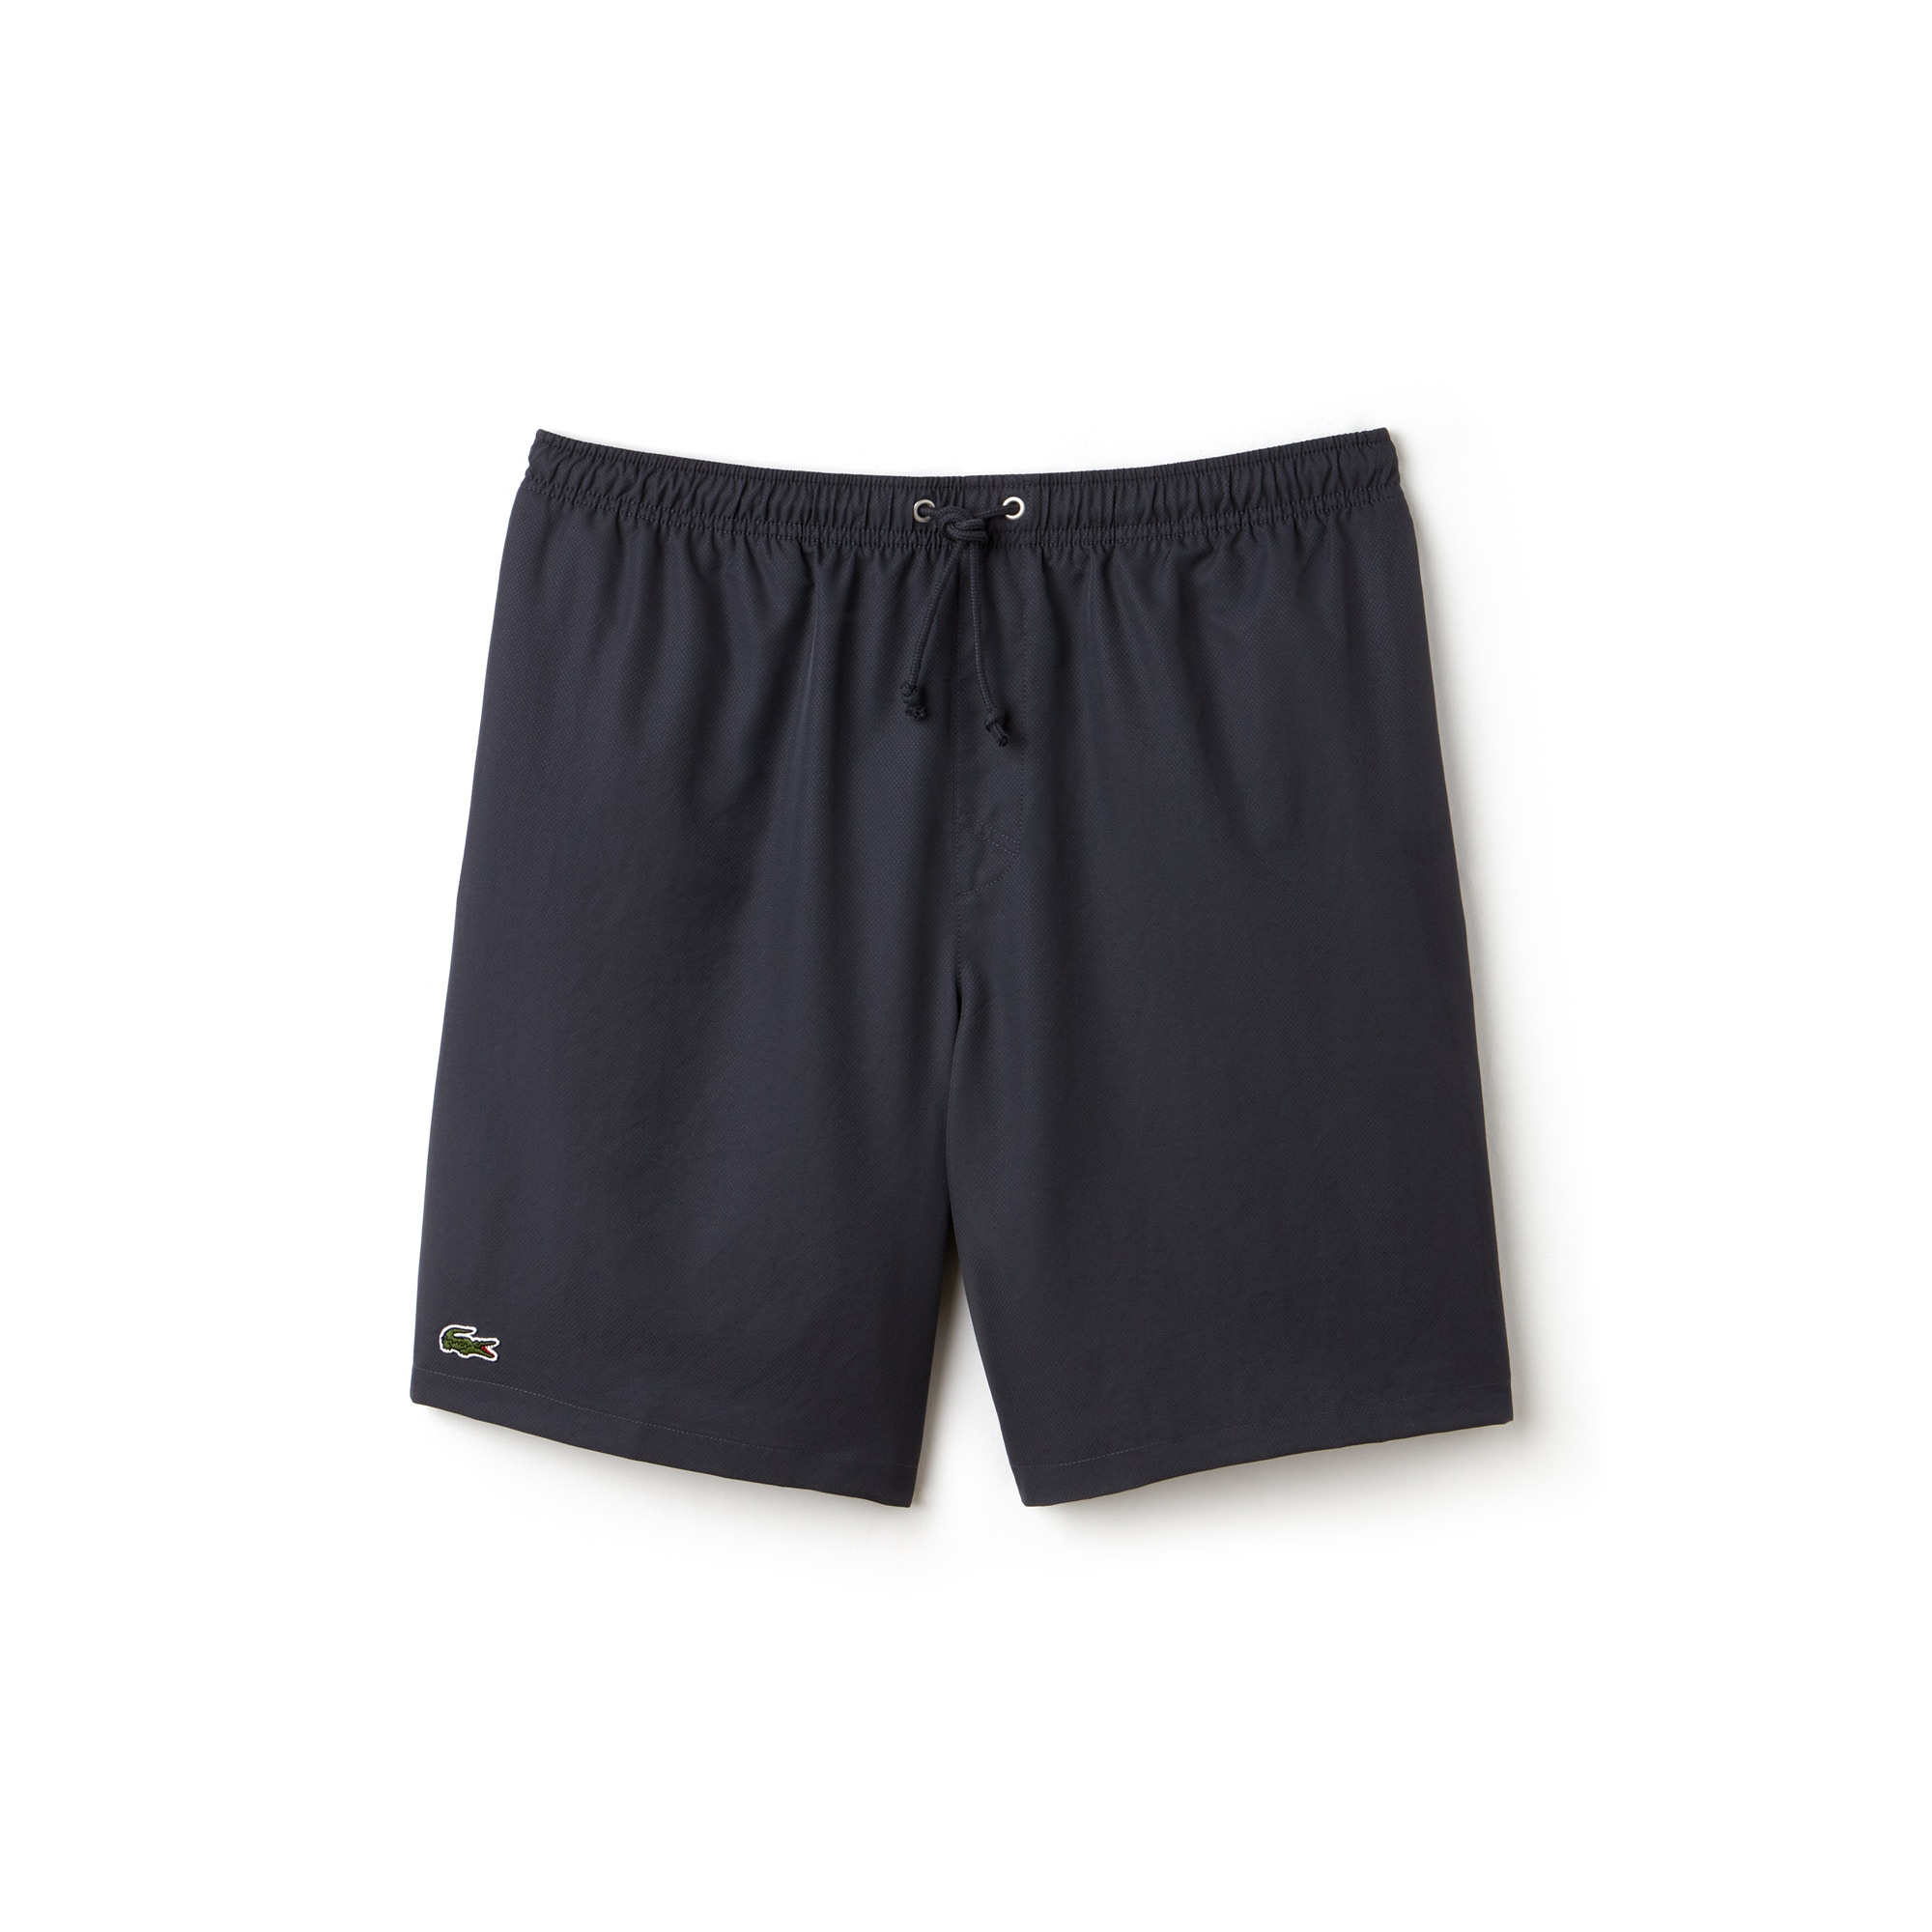 Men's SPORT Tennis Shorts